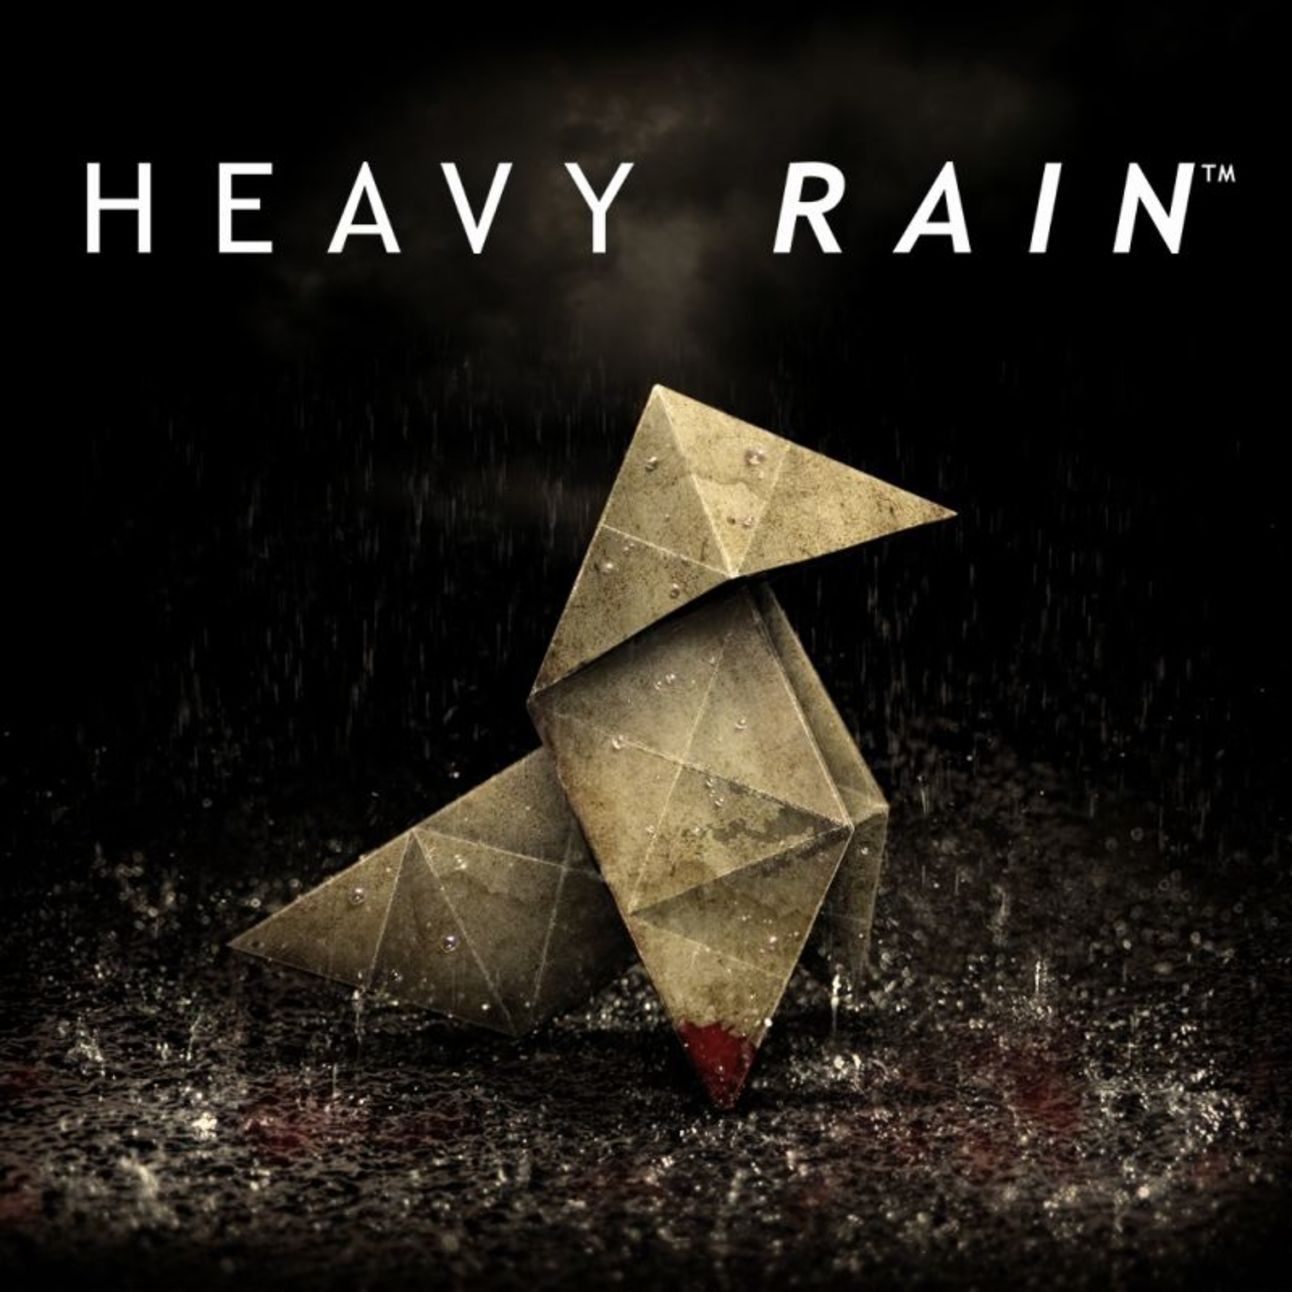 324784-heavy-rain-playstation-4-front-cover.jpg